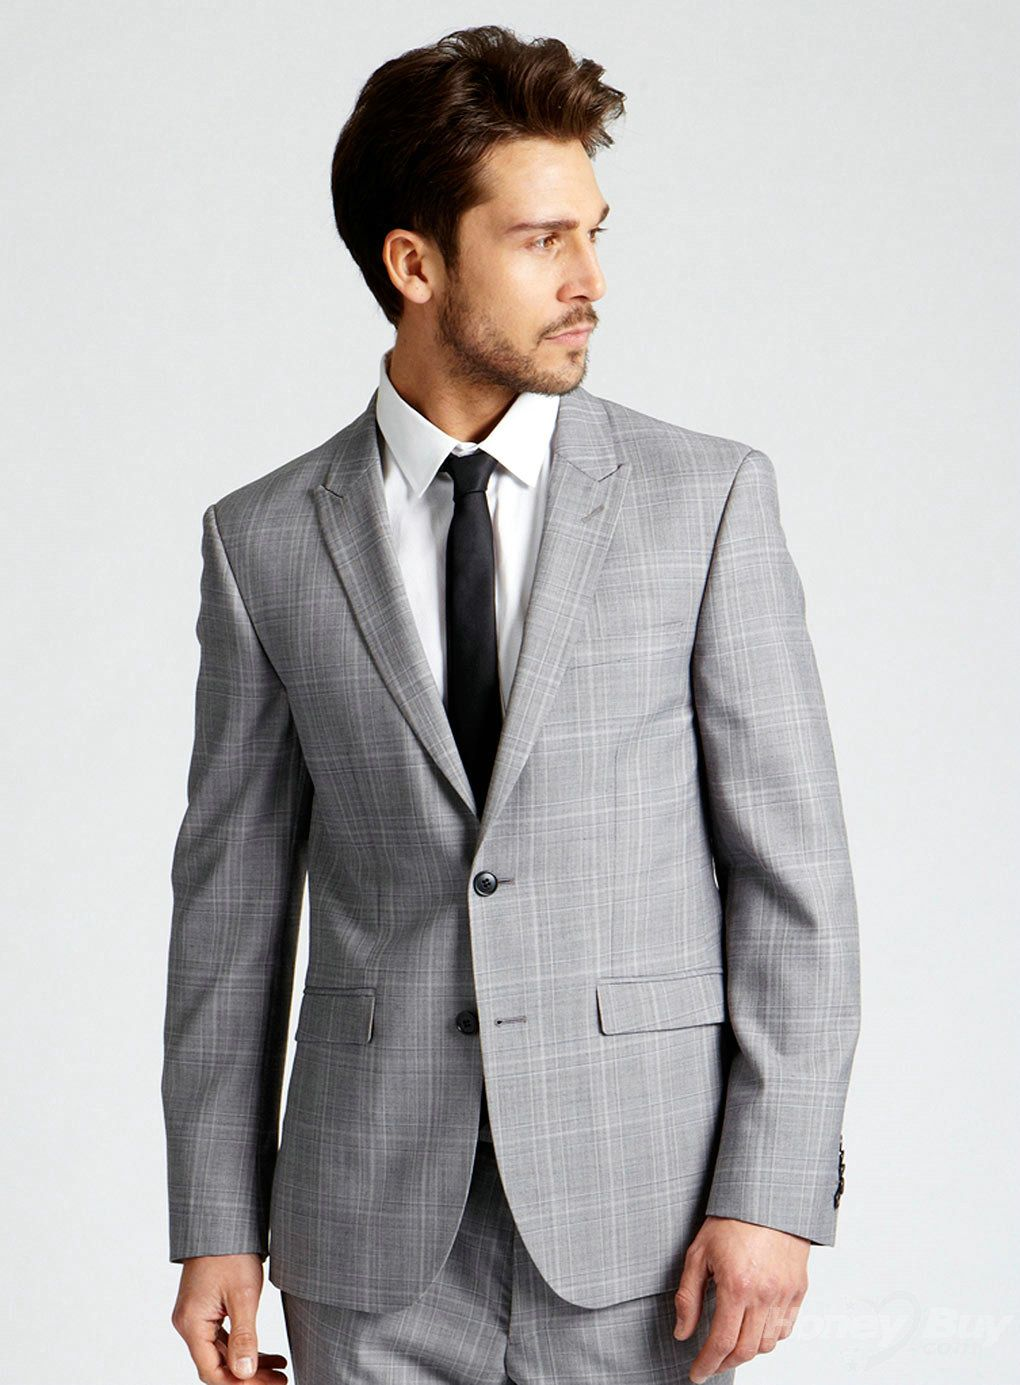 light grey suits wedding - Google Search | Wedding | Pinterest